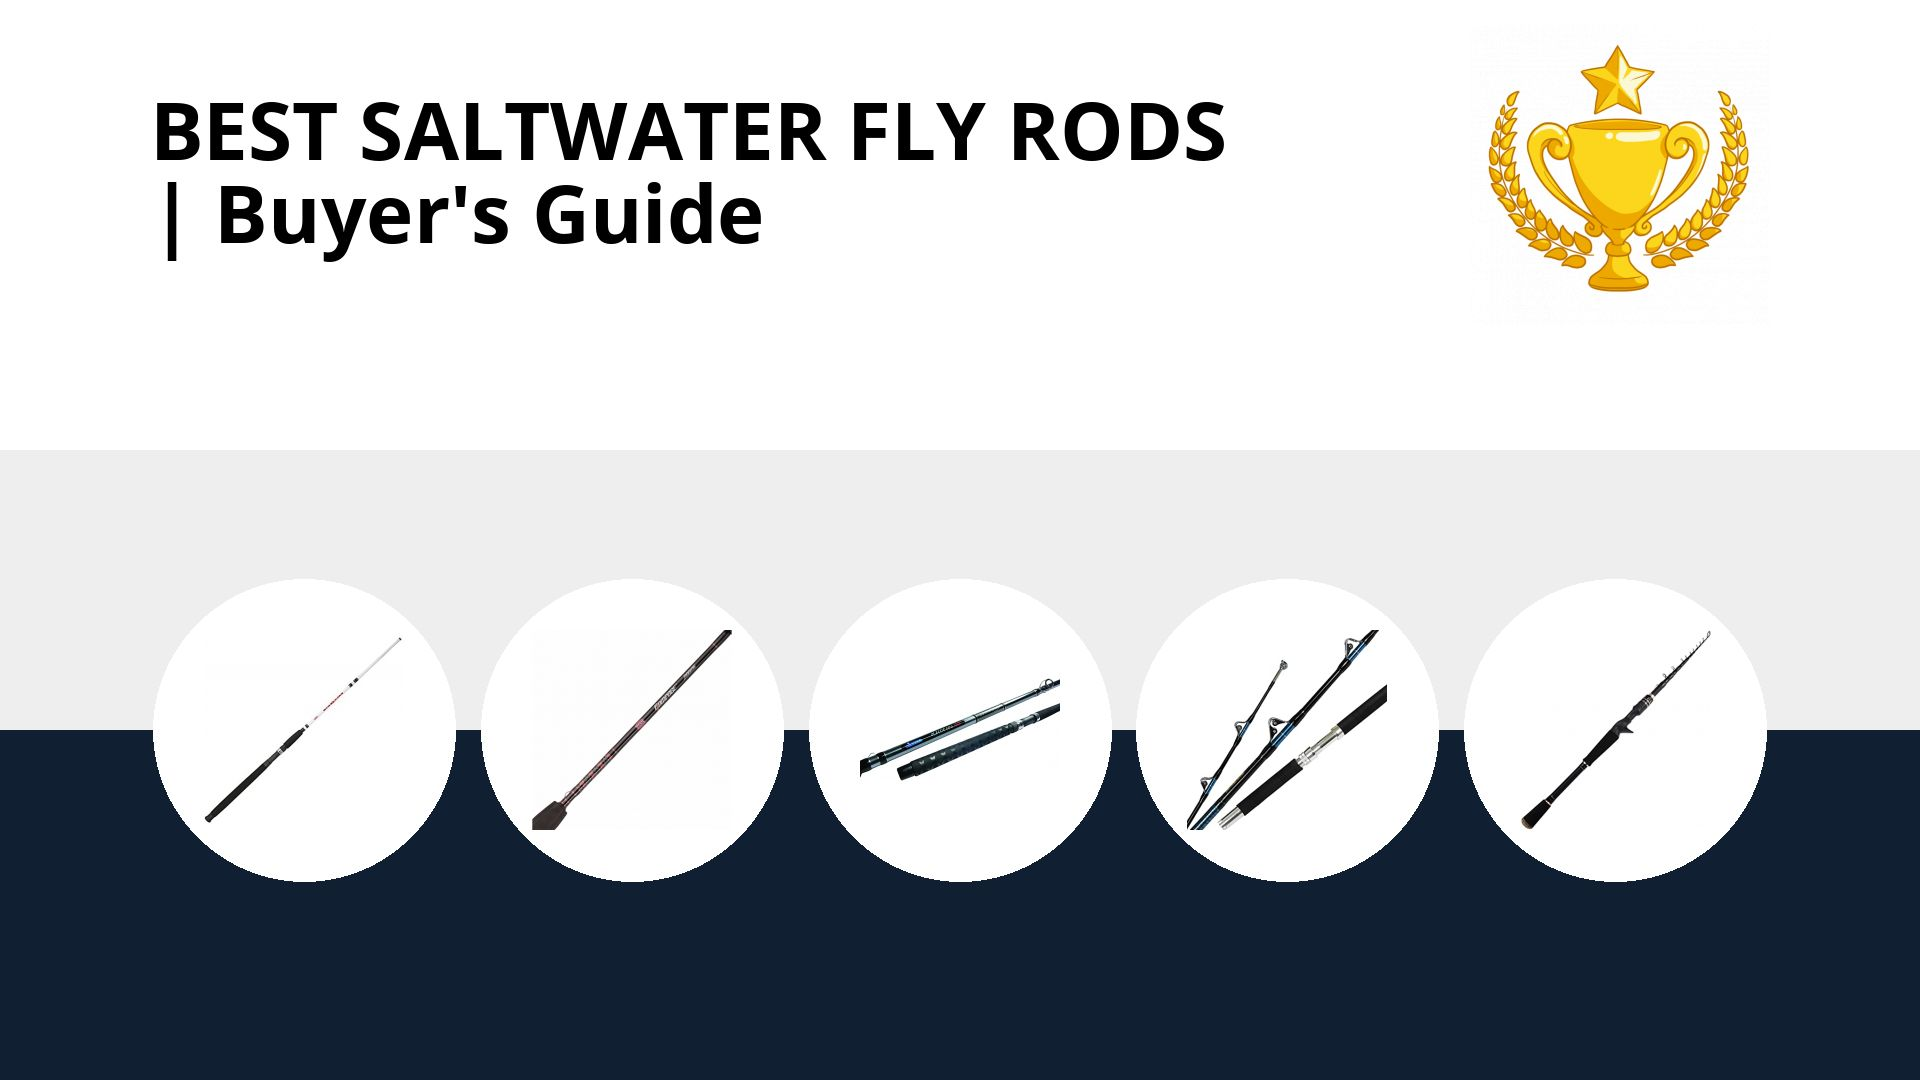 Best Saltwater Fly Rods: image